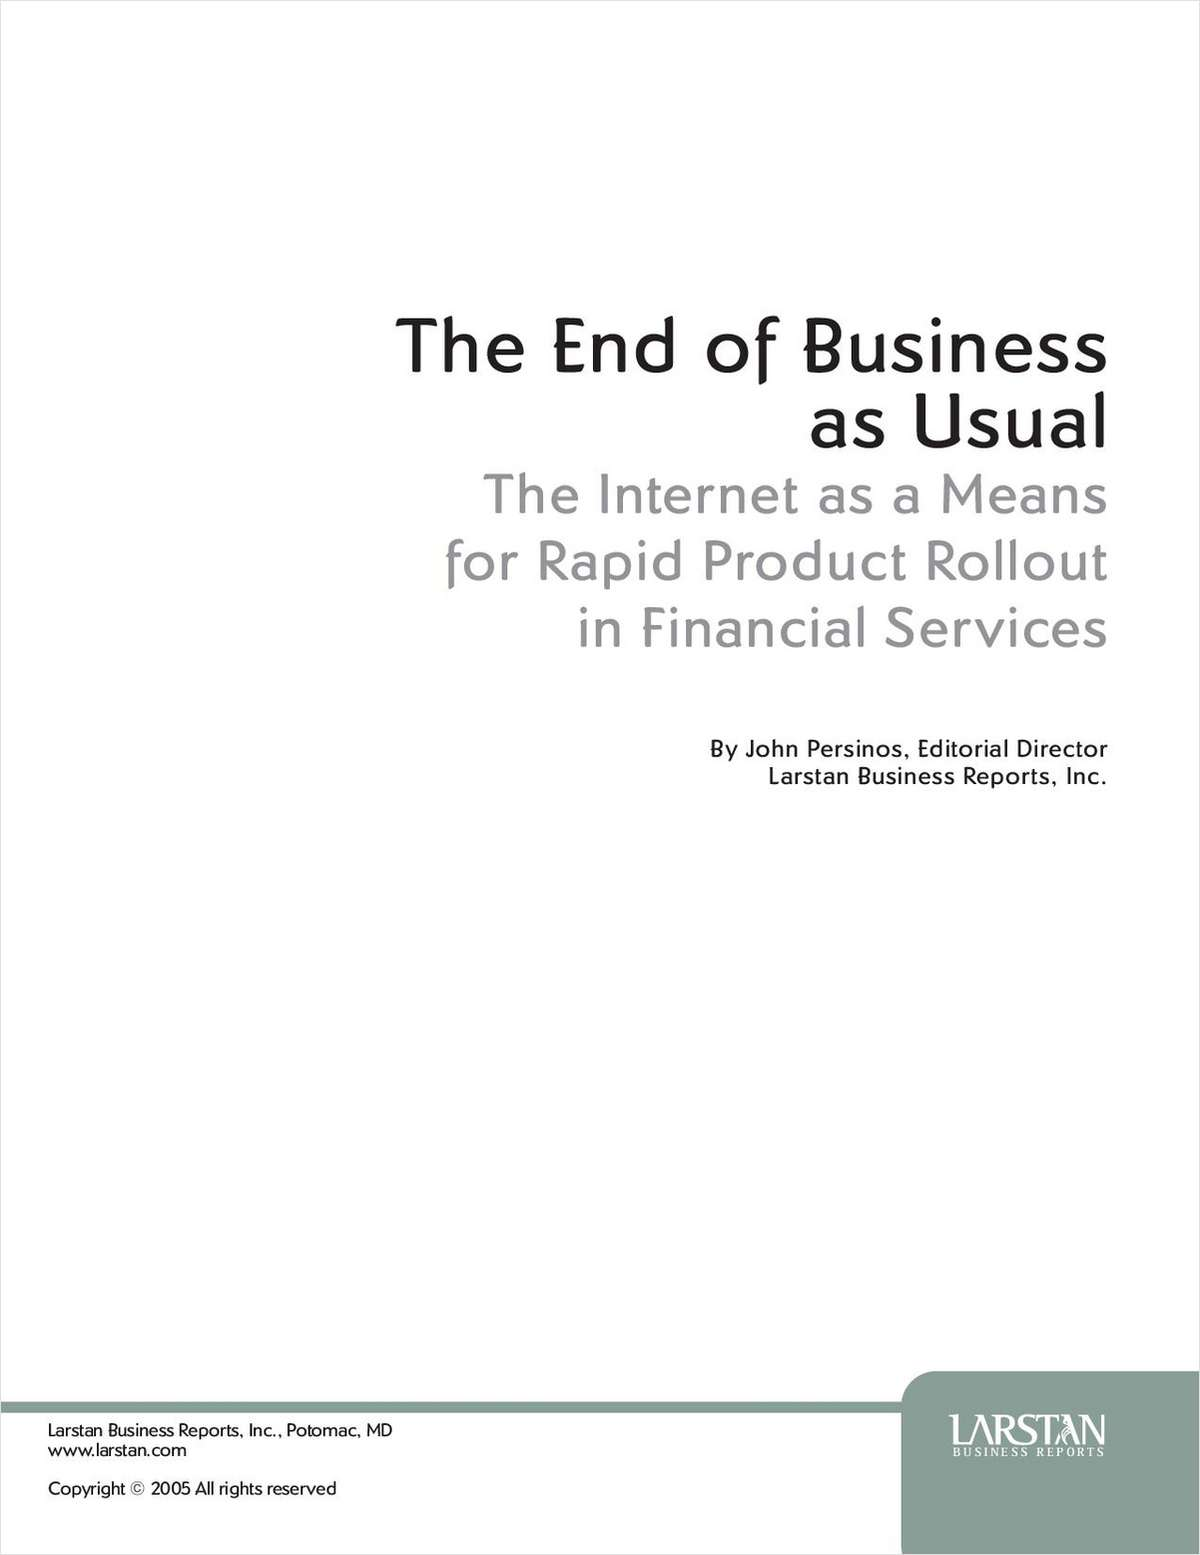 Rapid Product Rollout in Financial Services